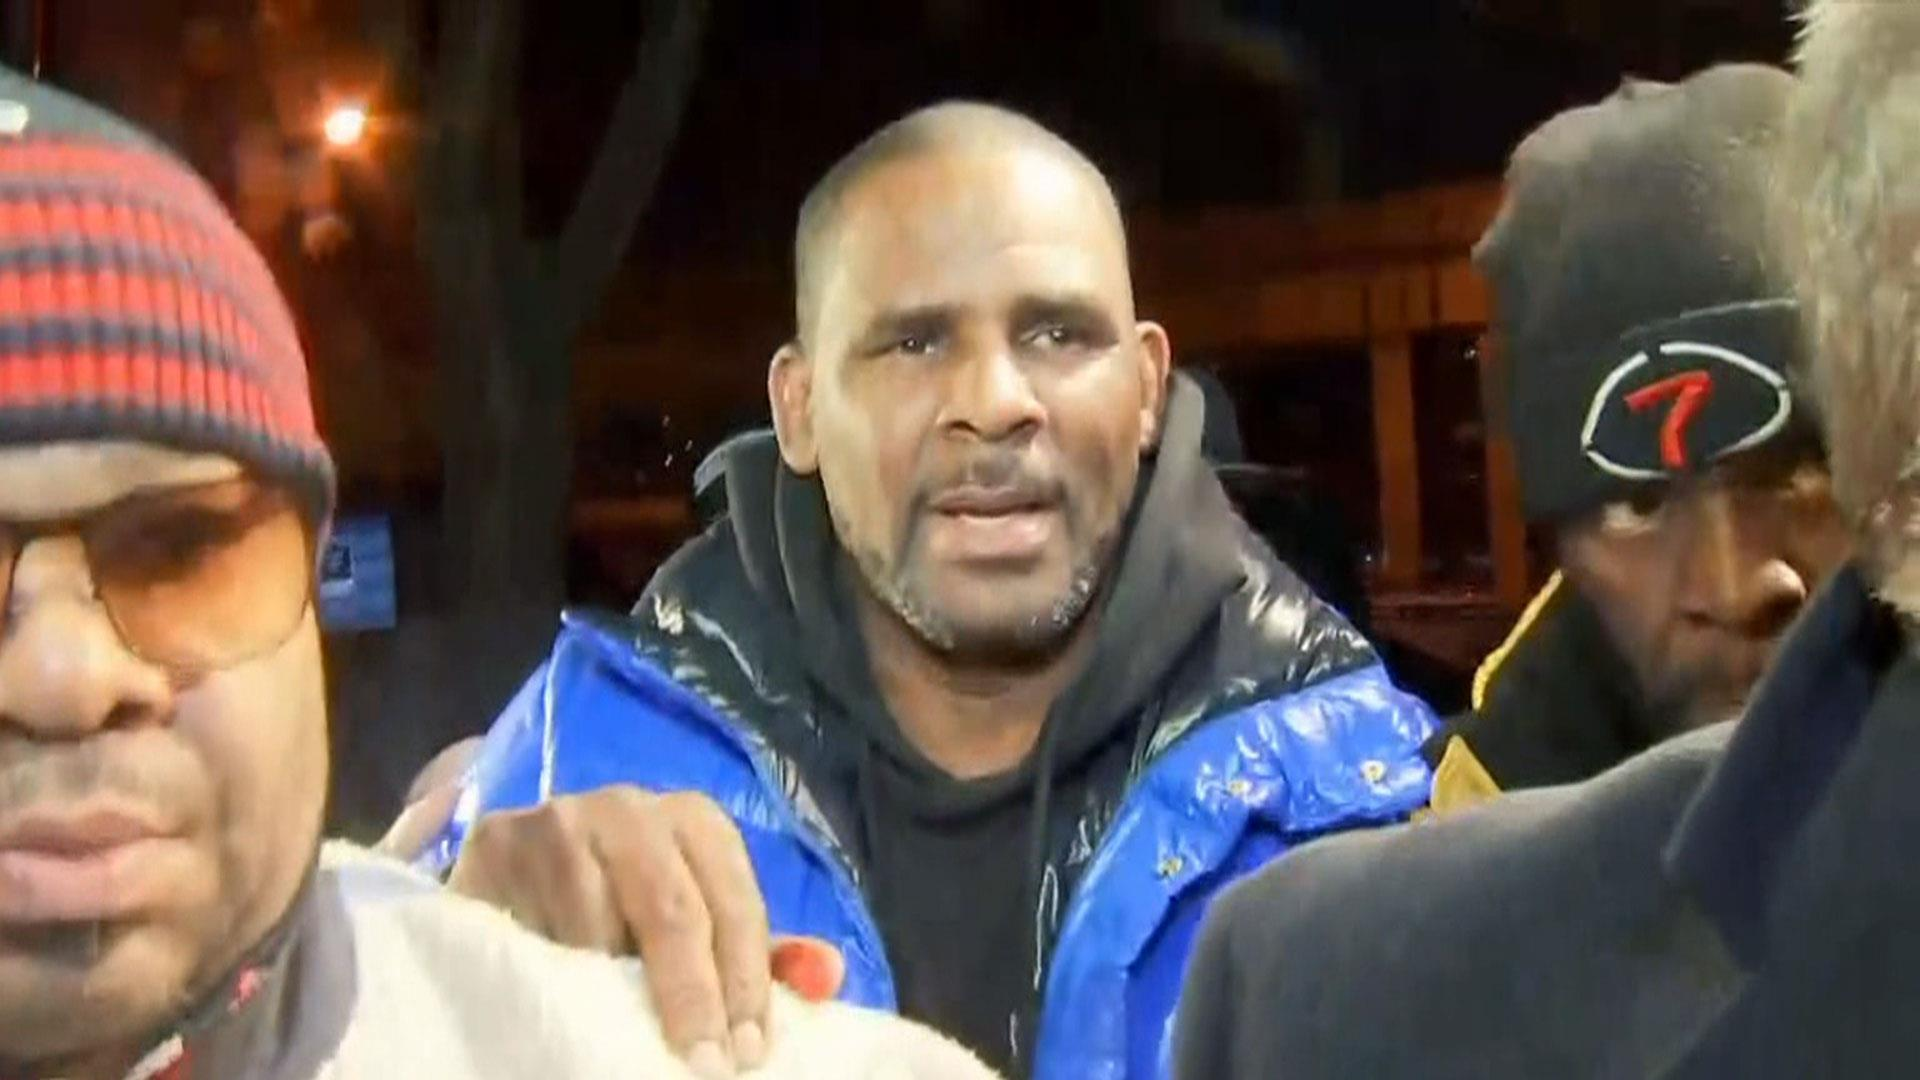 Watch: R. Kelly surrenders to authorities on charges of sexually abusing minors